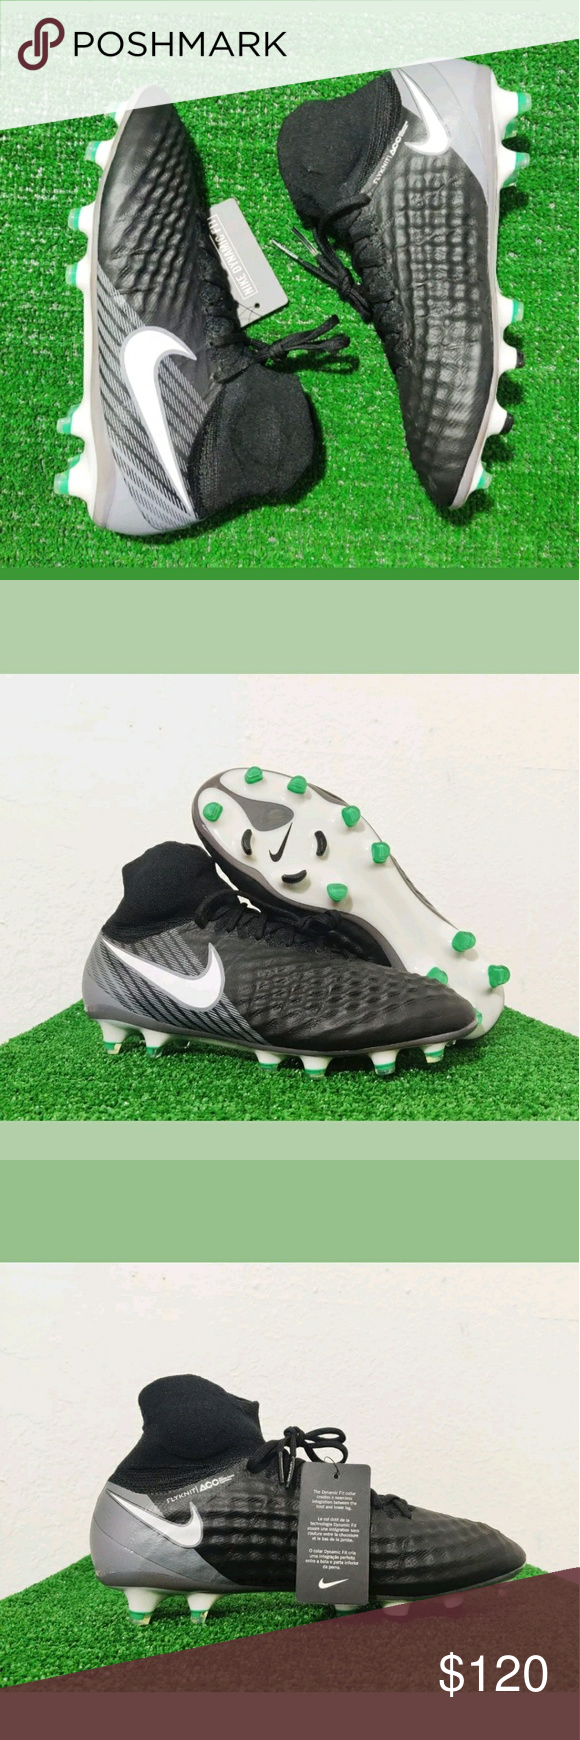 d85ee36d2 Nike Magista Obra II FG AG PRO ACC Soccer Cleats Brand New Without Box Nike  Magista Obra II FG AG PRO ACC Soccer Cleats Black 844595-002 Size 8 Nike  Shoes ...